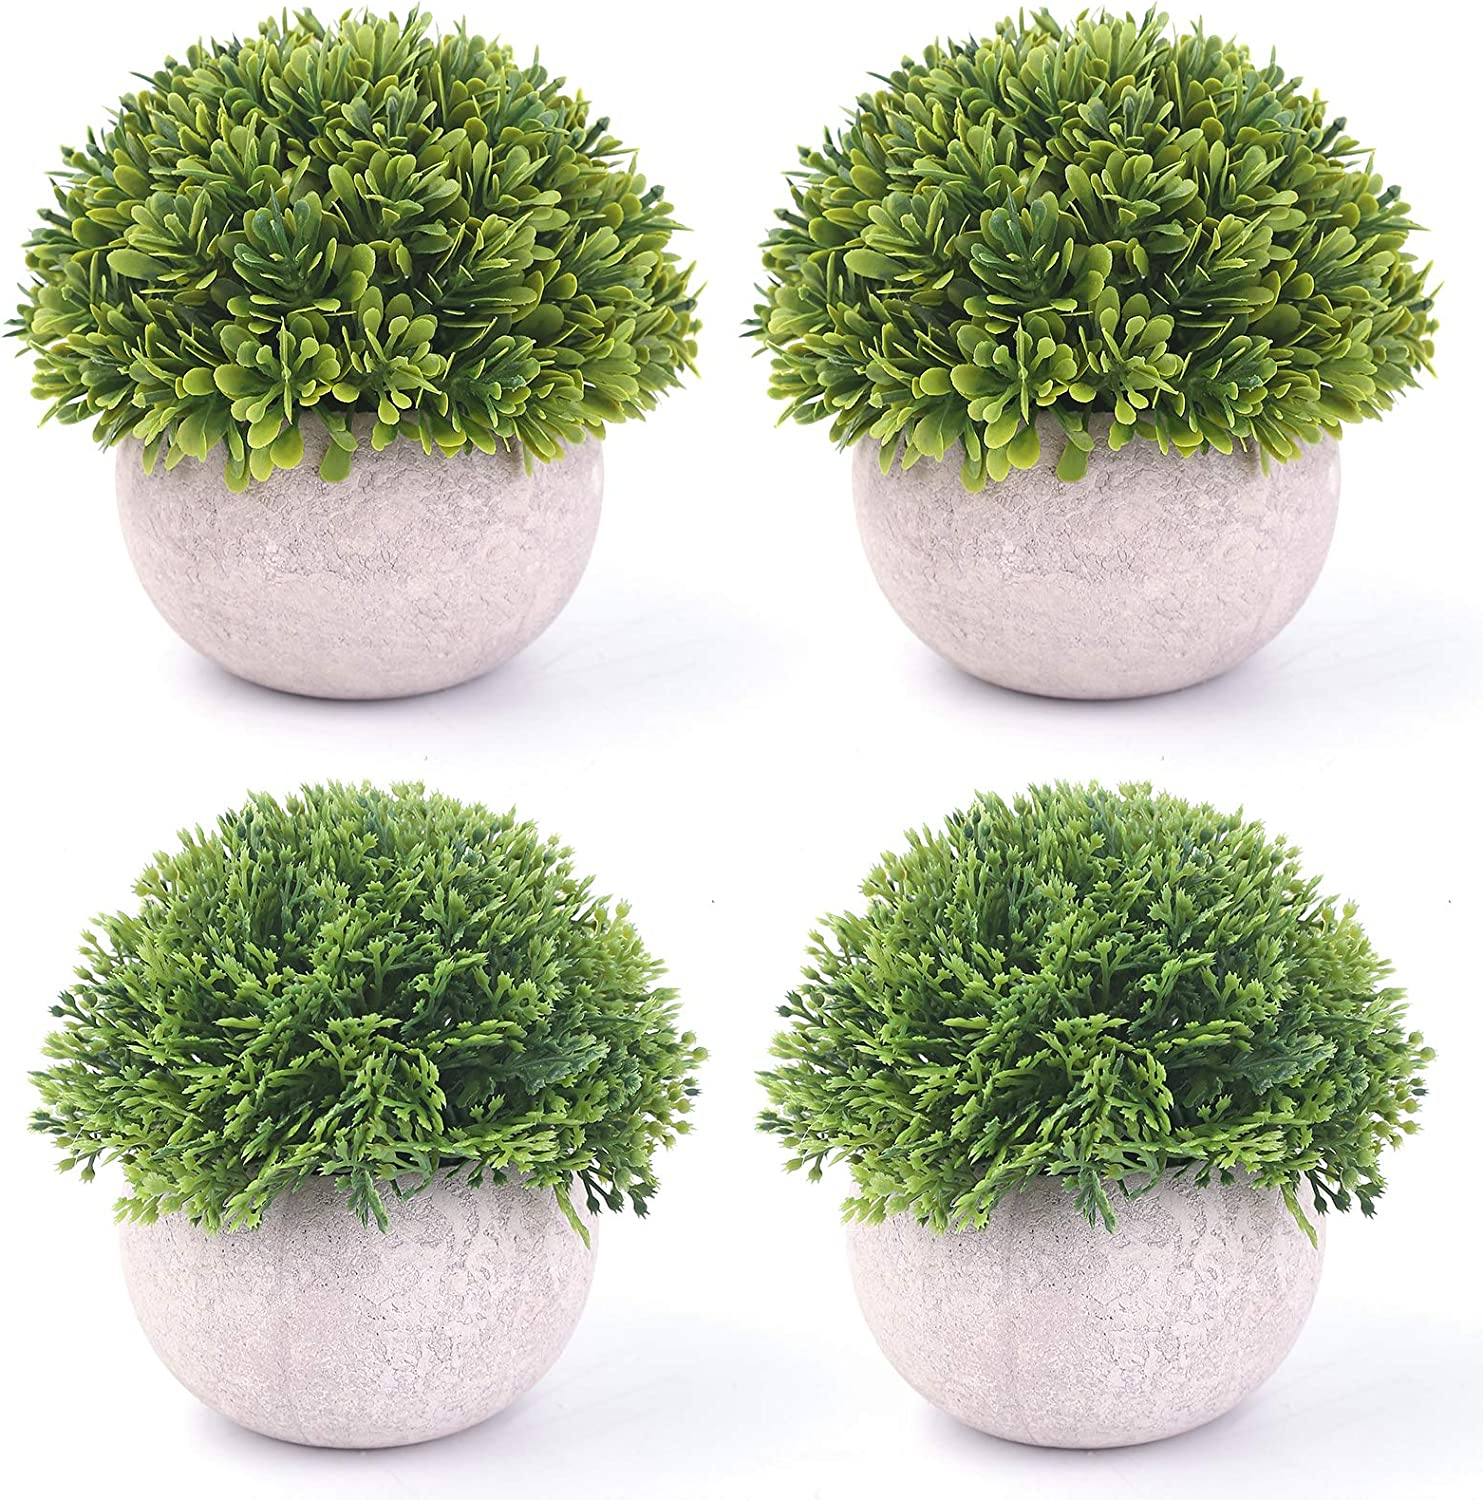 BOMAROLAN 4 Pcs Mini Potted Plastic Artificial Green Plants, Fake Topiary Shrubs Fake Plant, Small Faux Greenery, for Bathroom Home Office Desk Decorations (Potted Plants)